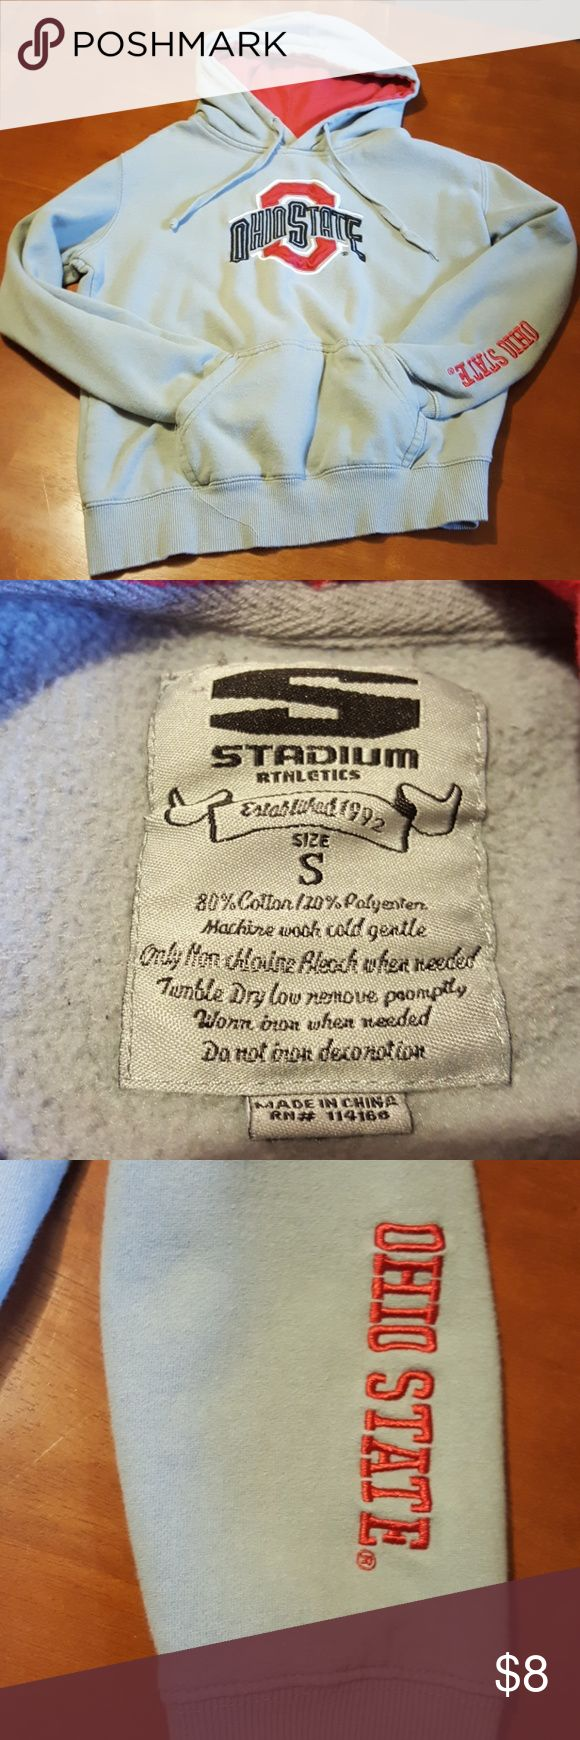 """Youth Ohio State Hoodie Size Small EUC Ohio State Hoodie. Armpit-armpit measures 19"""" and length is 21"""" No stains or tears. Smoke free home. Stadium Athletics Shirts & Tops Sweatshirts & Hoodies"""